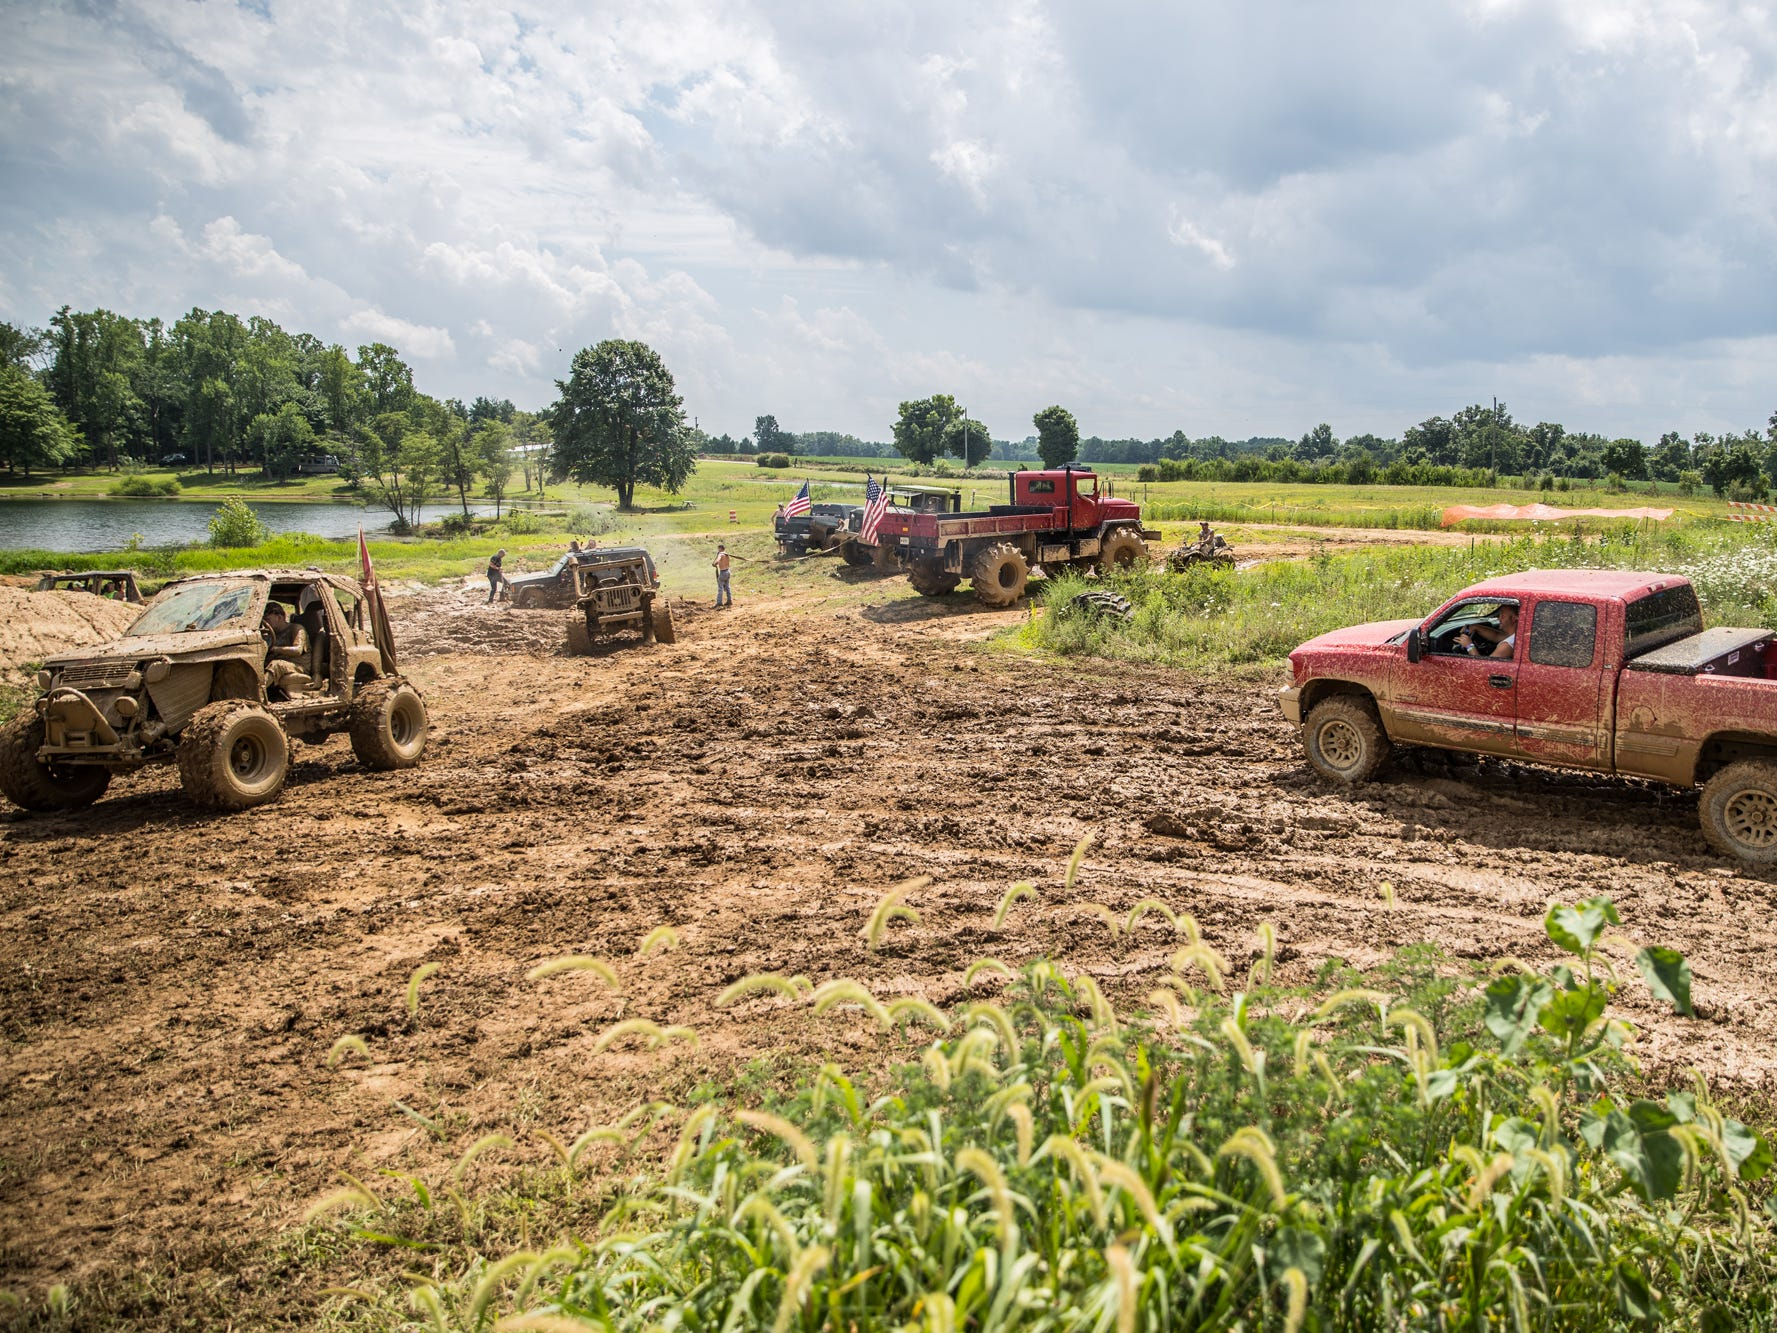 Participants enjoy the mud during the Redneck Rave at BlackSwan Mudpit in Medora, Ind., on Friday, July 20, 2018.